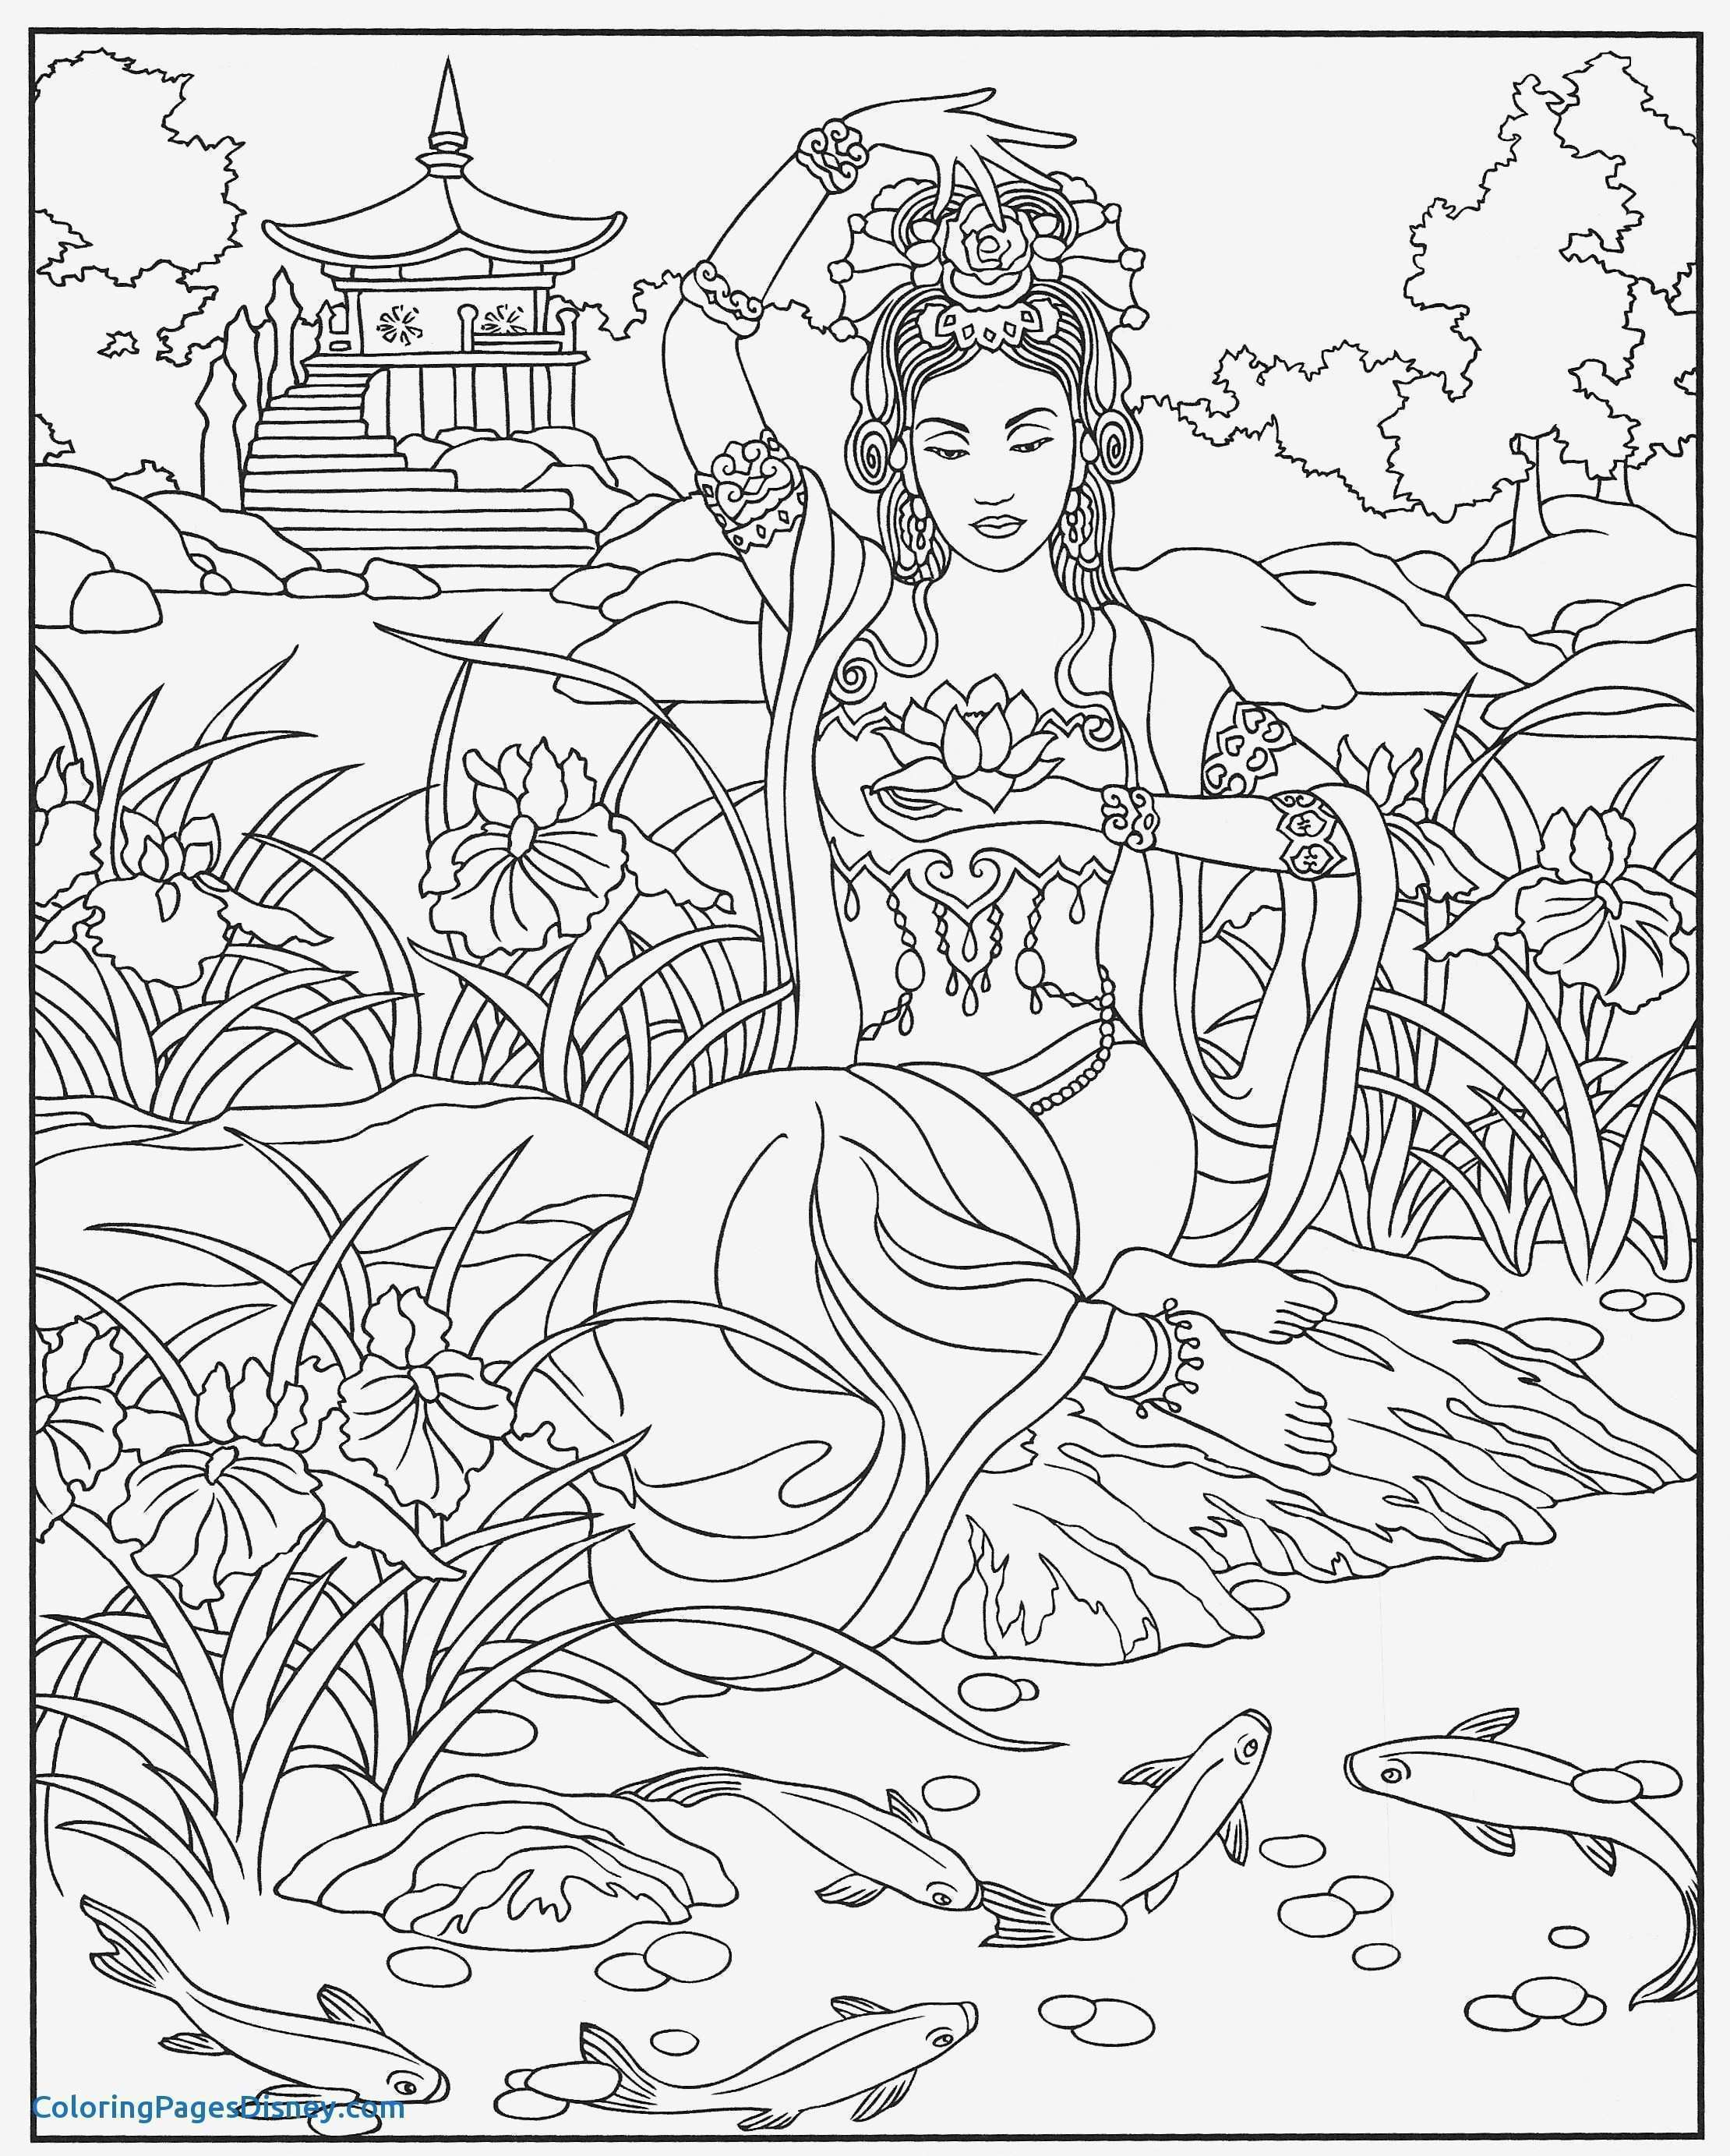 Coloring Games Crayola Awesome Cool Coloring Page Unique Witch